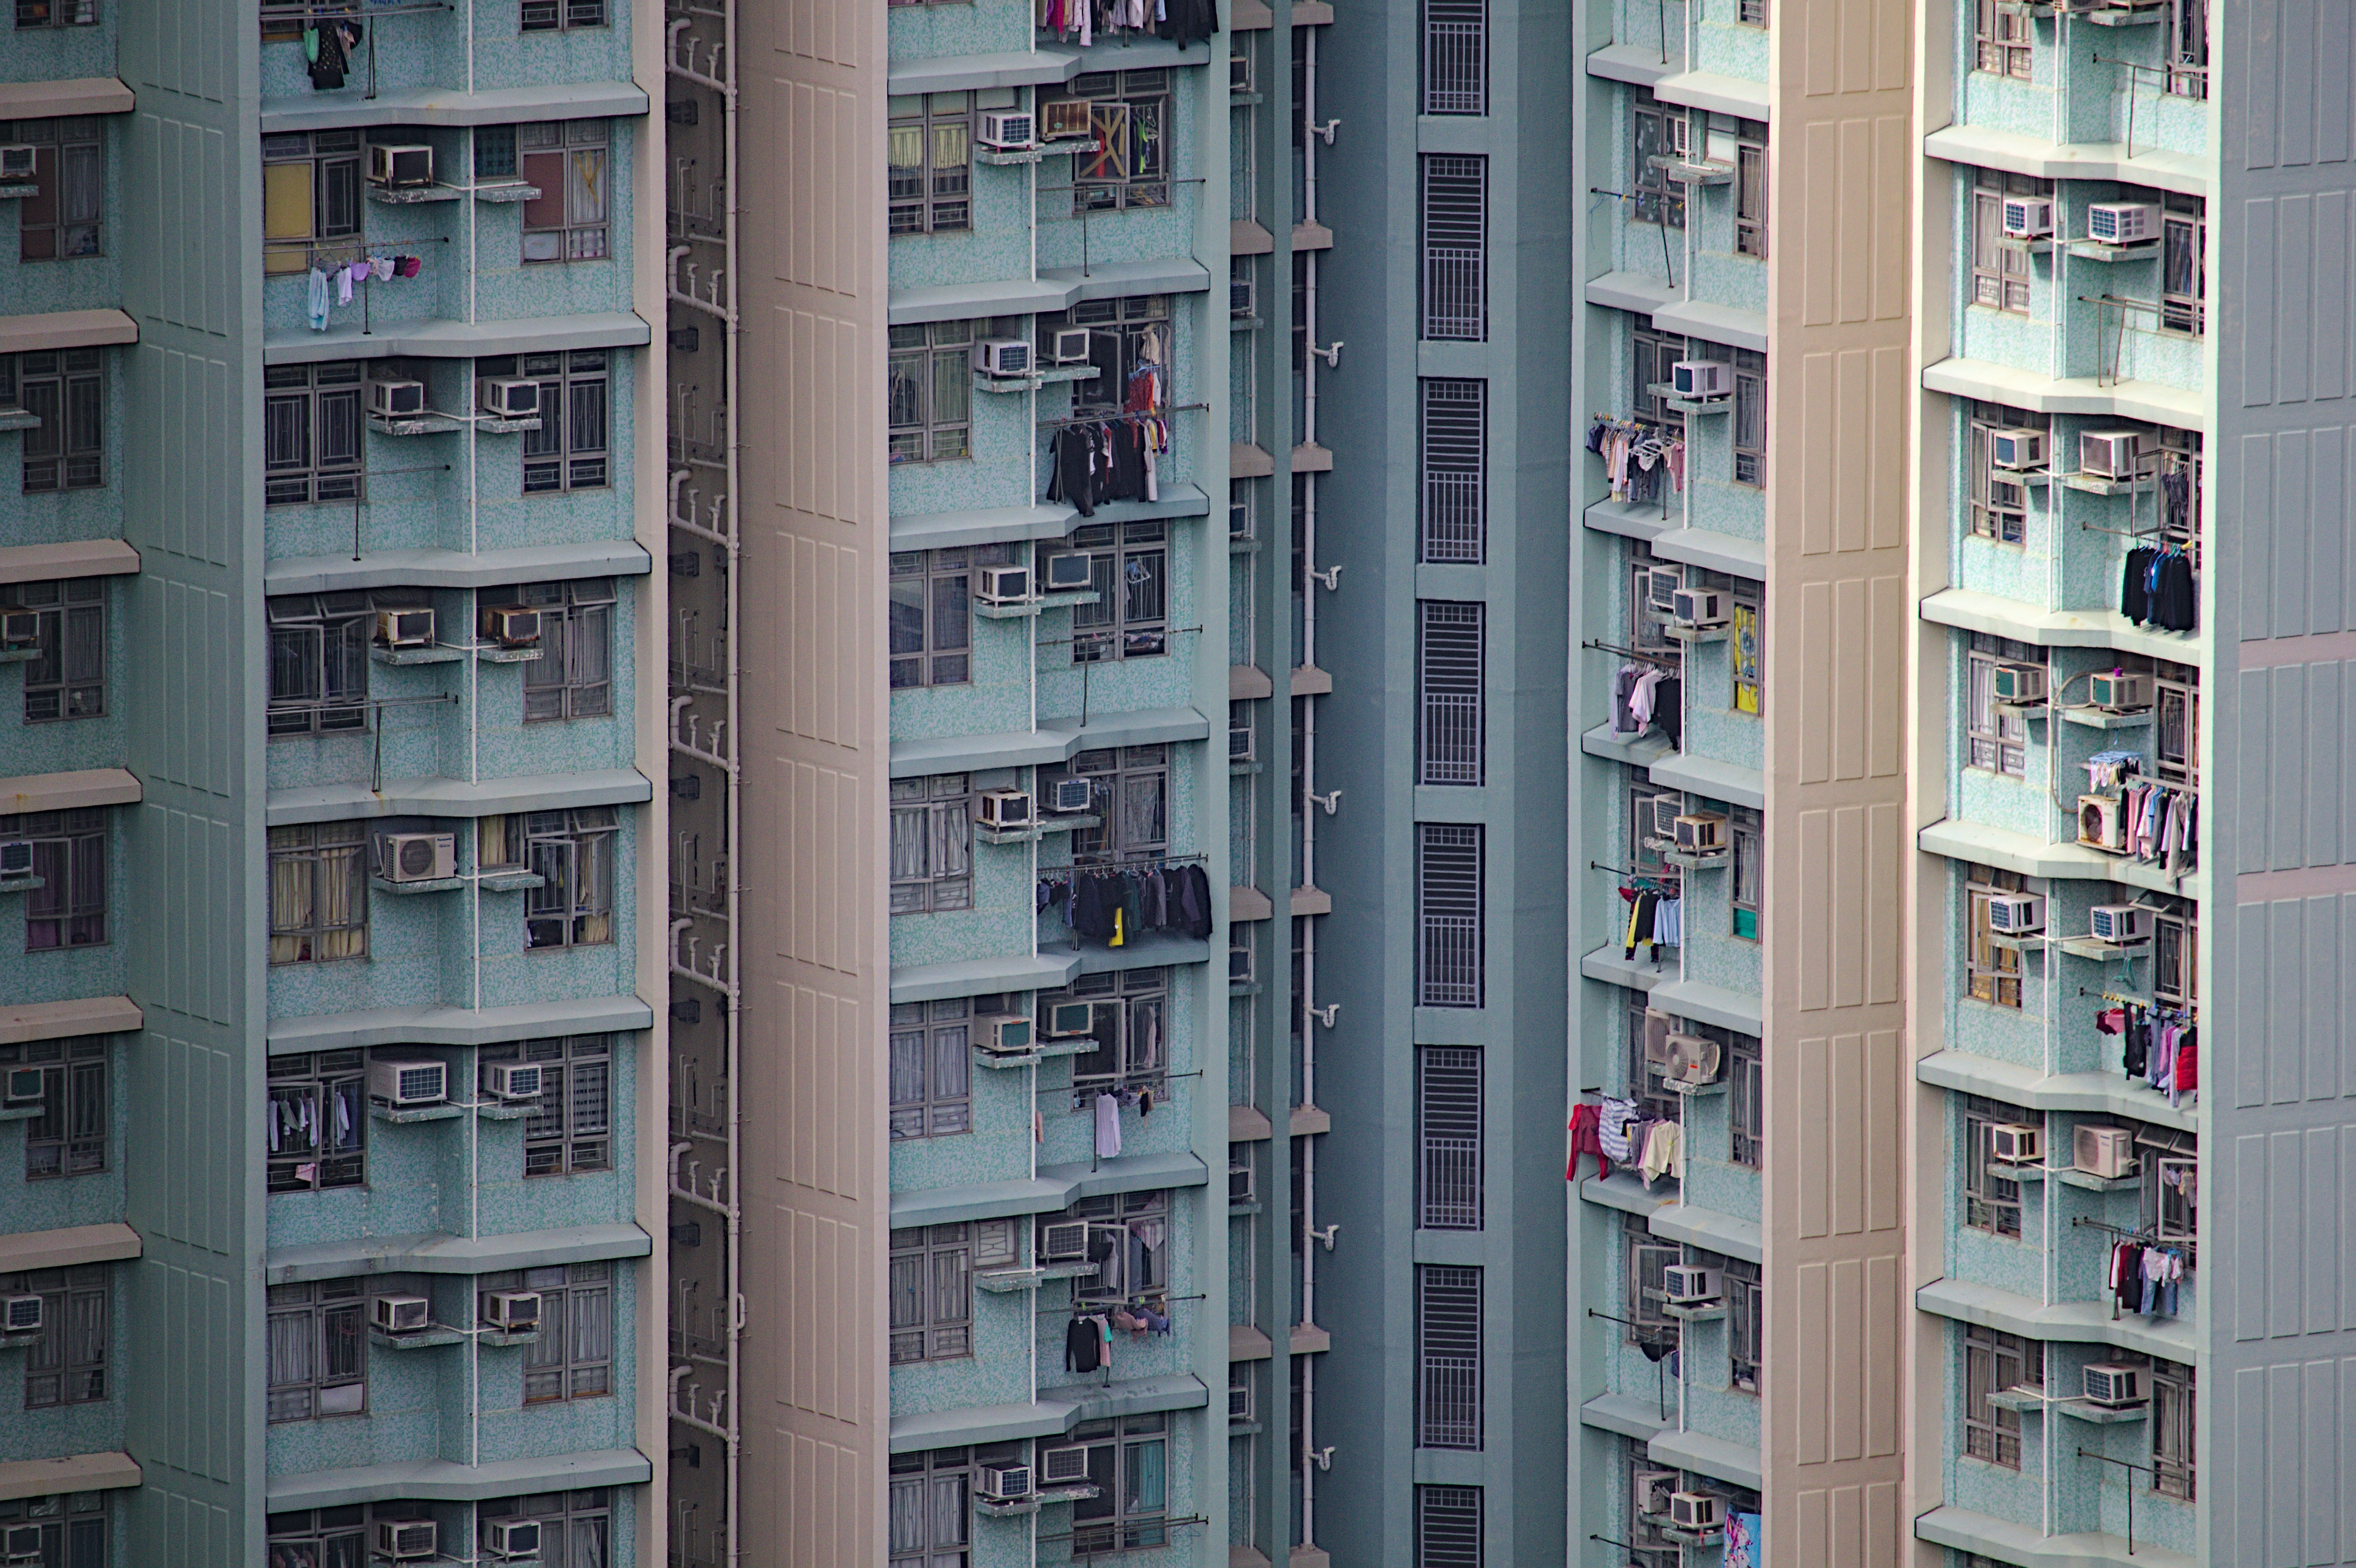 Clothes high-rise buildings